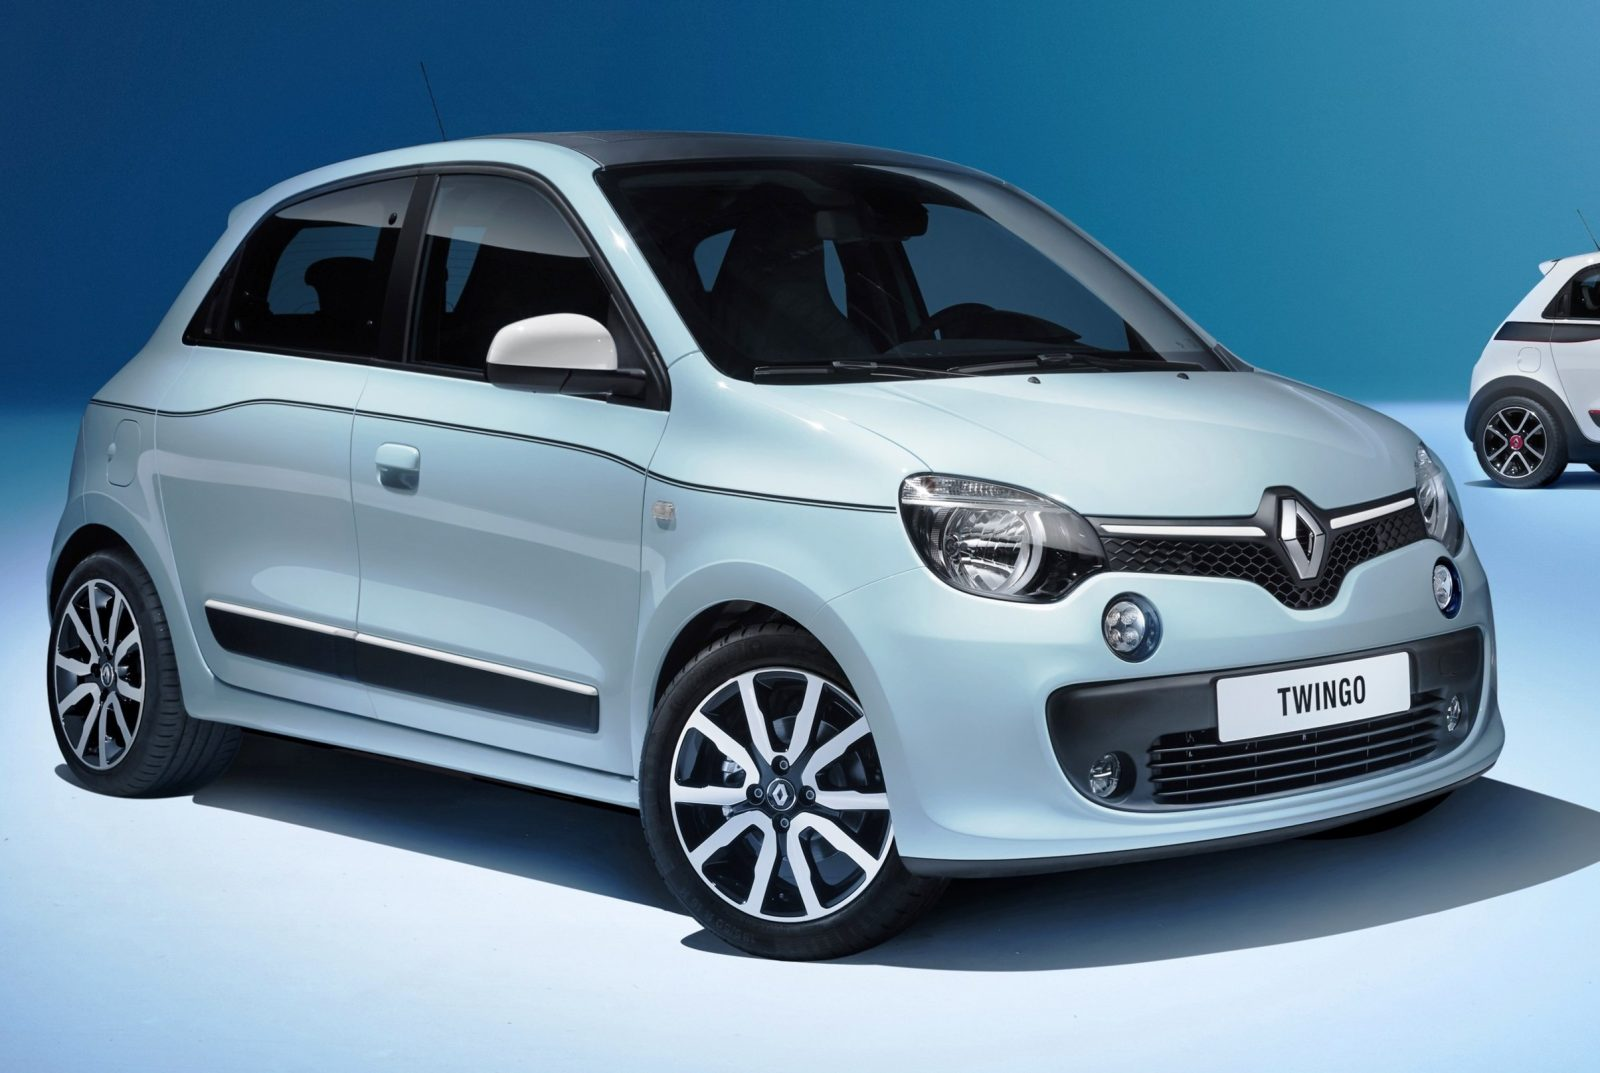 All-New Renault Twingo Packs Rear Engine, Four Doors and Cute New Style 5